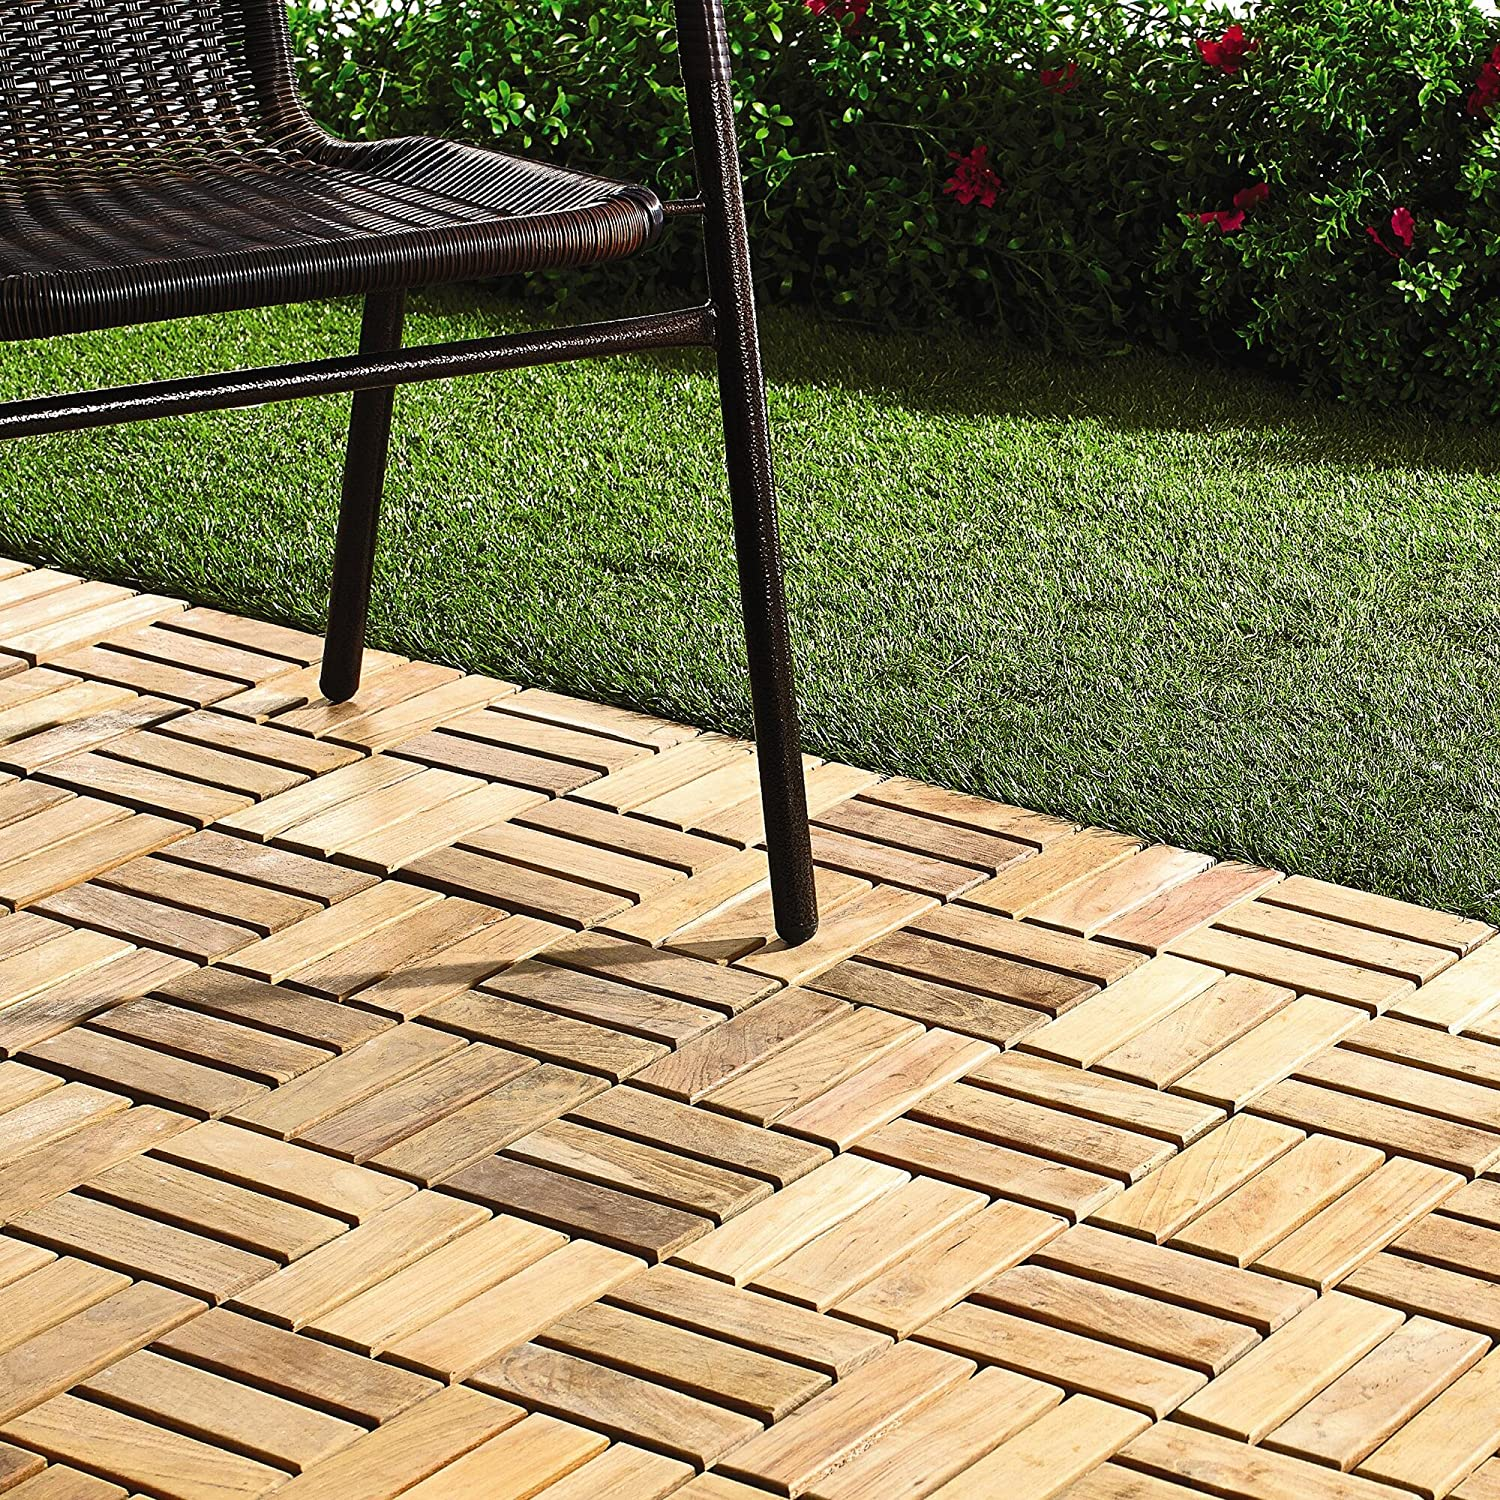 Quick Connect   Teak Interlocking Flooring Tiles   Windmill Pattern    Natural Finish   10 Square Feet   Wood Floor Coverings   Amazon.com